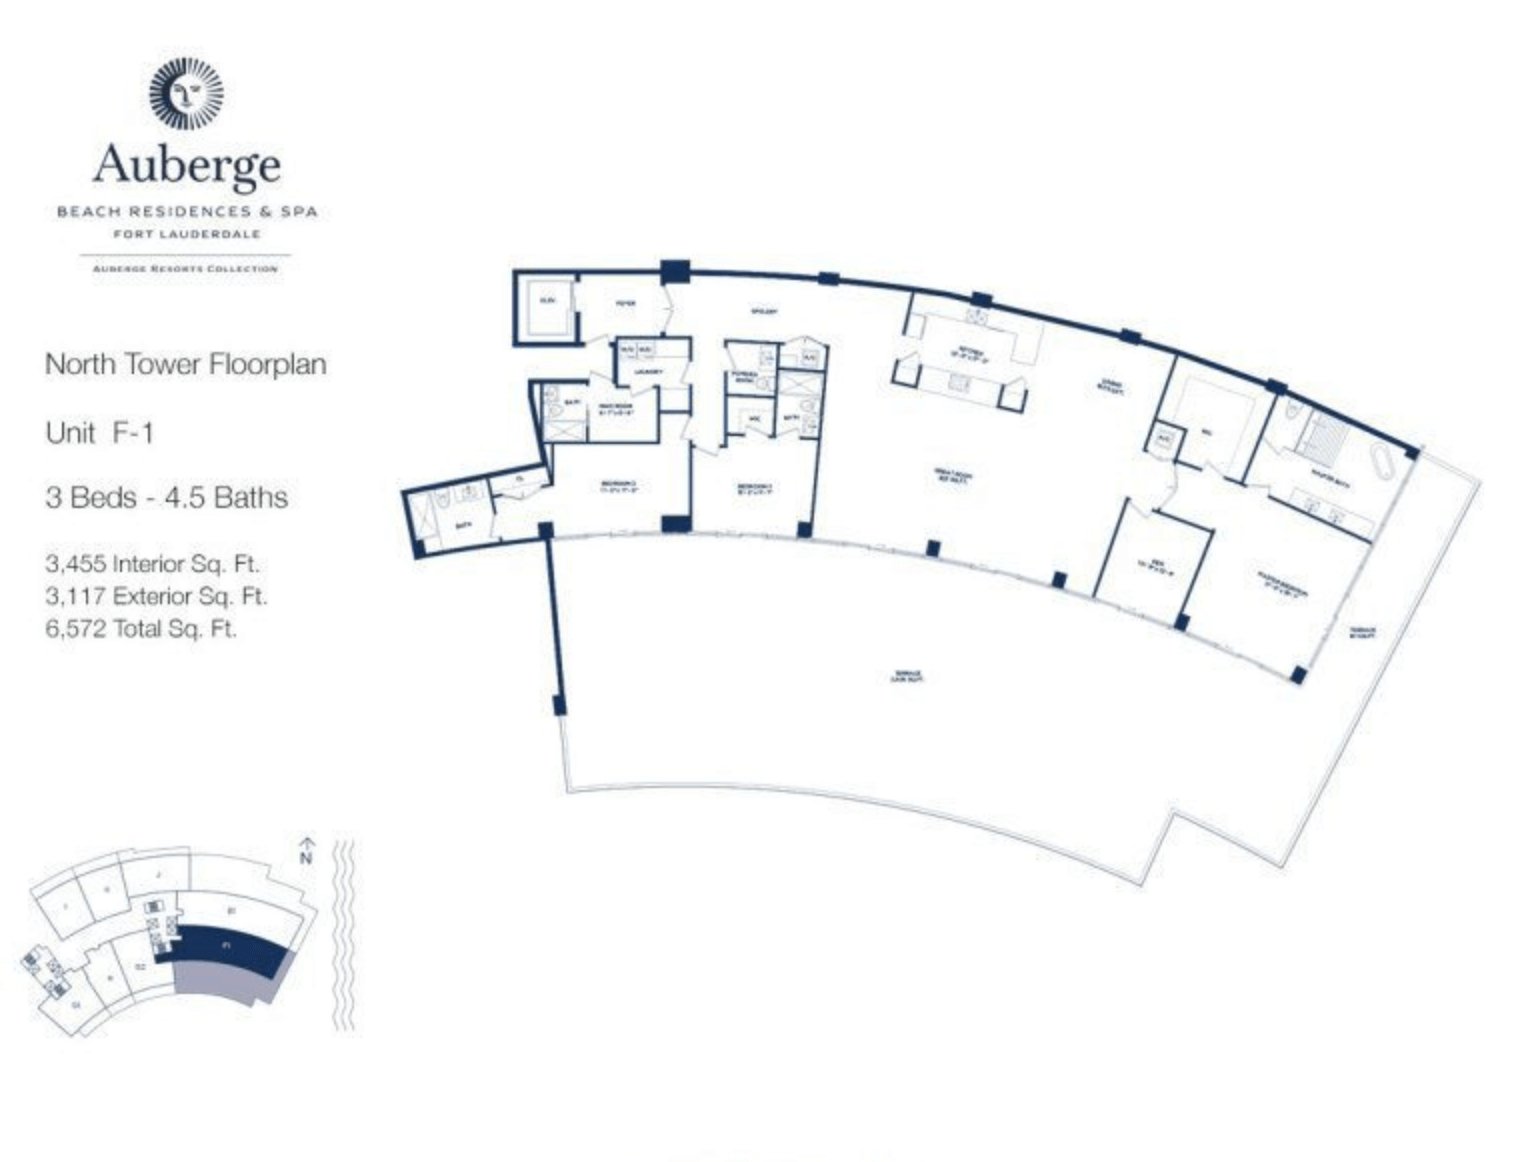 Auberge Beach Residences North Tower F1 | 3 Beds - 4.5 baths